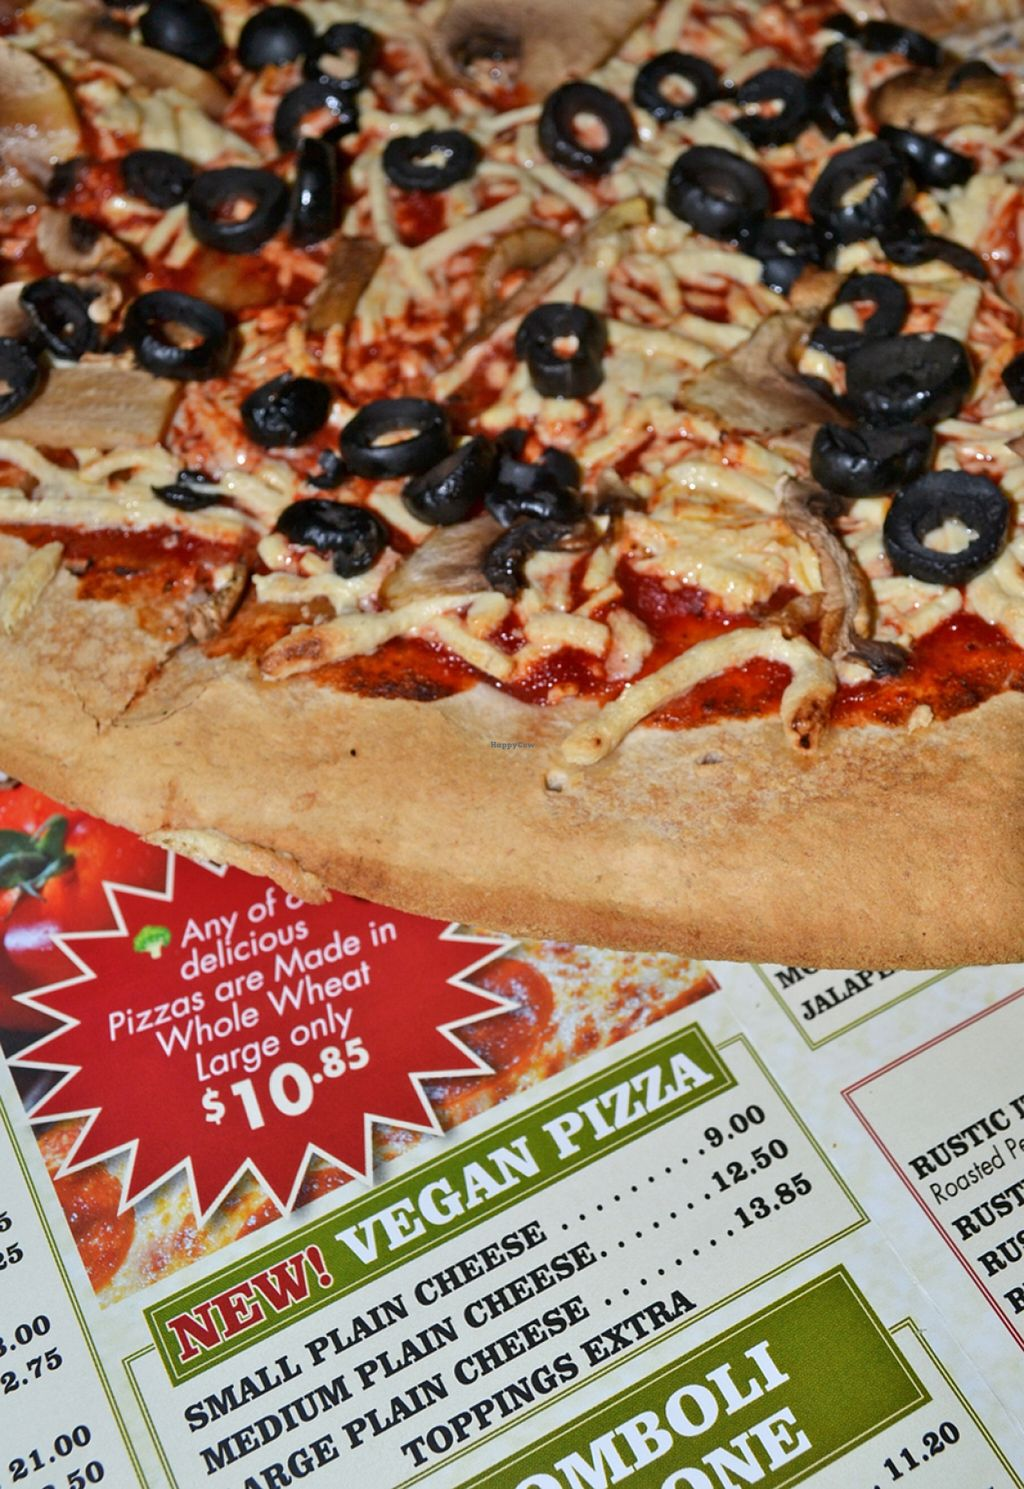 """Photo of Nick's Pizza  by <a href=""""/members/profile/American%20Vegan"""">American Vegan</a> <br/>Nick's has vegan pizza on the menu! <br/> April 29, 2016  - <a href='/contact/abuse/image/72154/146728'>Report</a>"""